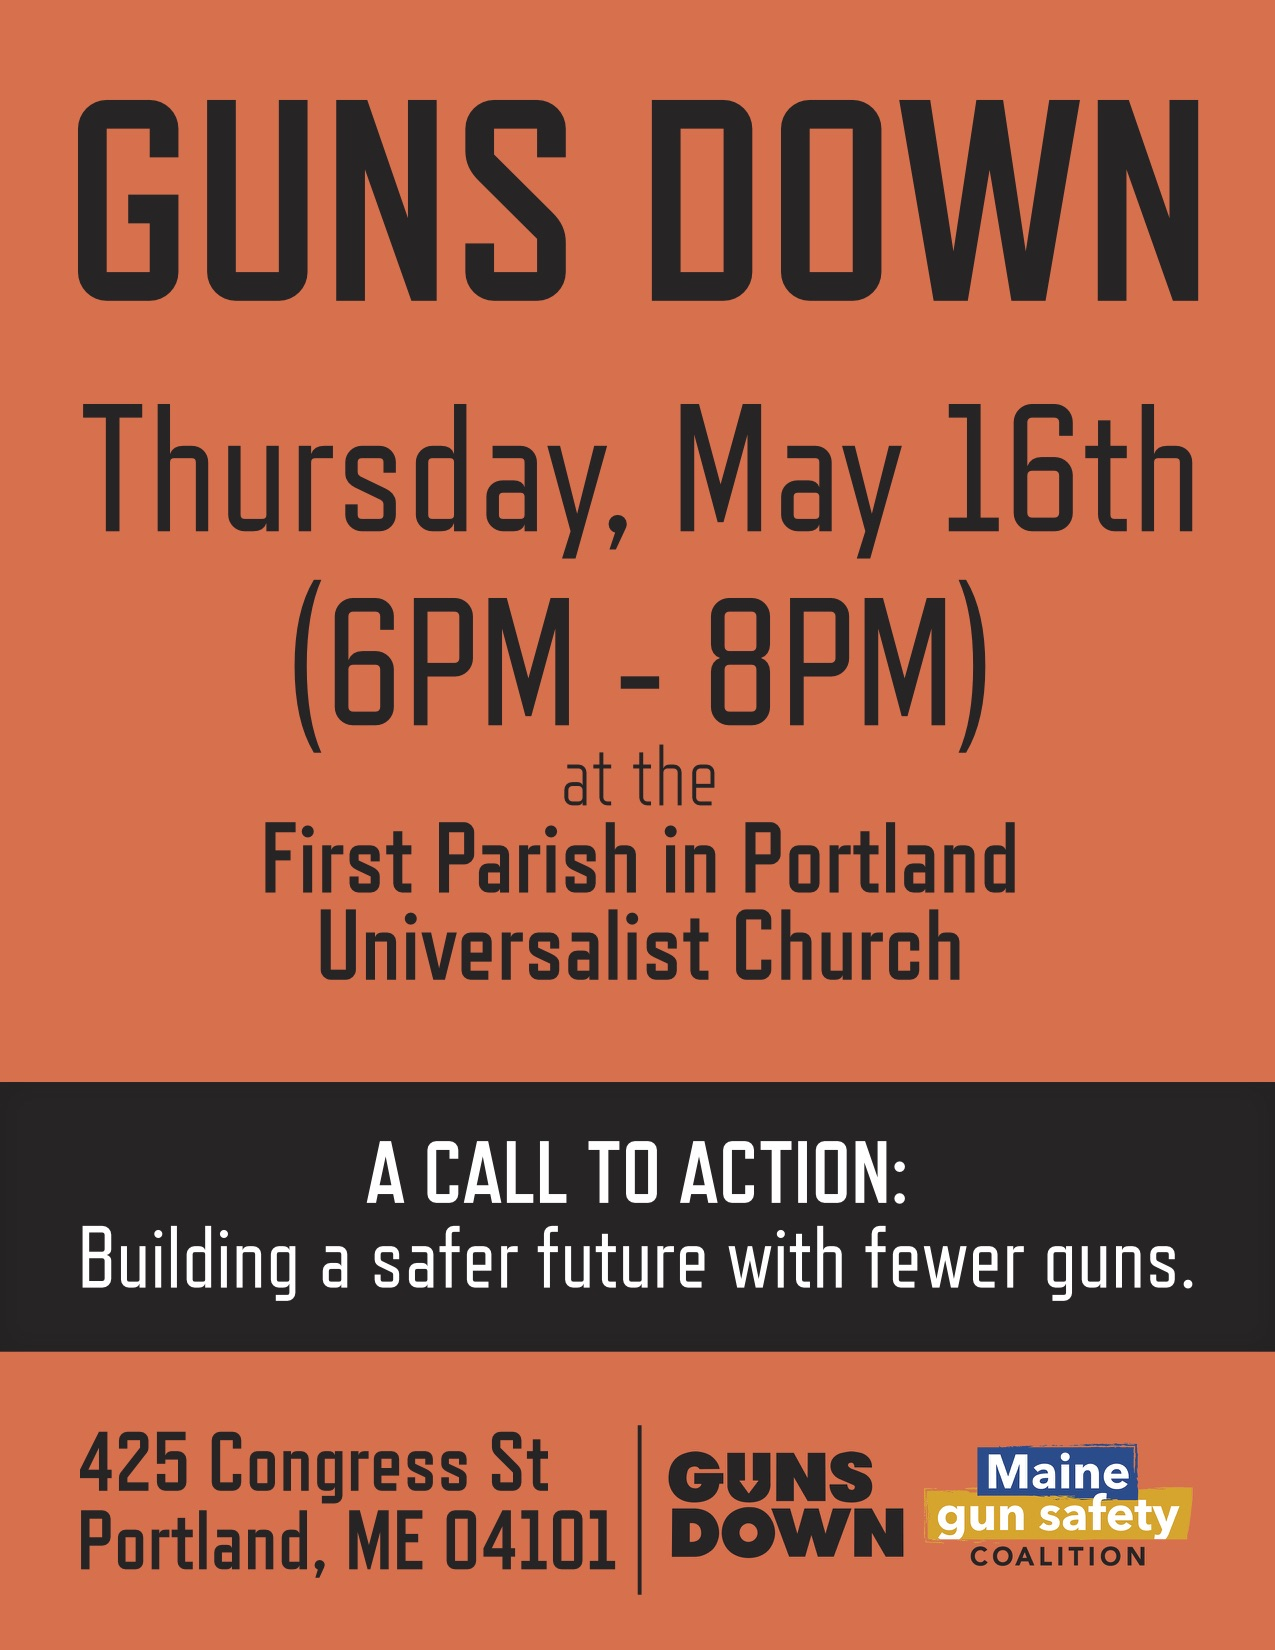 "The Maine Gun Safety Coalition and Guns Down America Co-founder Igor Volsky will host a Town Hall-style discussion with local gun violence prevention advocates at 6PM THURSDAY, MAY 16 at the First Parish Unitarian Church, 425 Congress Street, Portland.    In his new book Guns Down, Volsky makes an evidence-based argument that guns, not ""the bad guys,"" are the problem. We cannot solve our gun crisis until we stop dividing gun owners into good guys and bad guys and recognize that all 393 million firearms that are currently held in civilian hands are inherently dangerous.    The event is a stop on the Guns Down America tour, which is dedicated to meeting with activists around the country and creating bolder gun violence prevention solutions.    Volsky will also discuss ""Is Your Bank Loaded,"" a new campaign to push the nation's 15-largest consumer banks to stop doing business with the gun lobby by rating them on whether they are doing business with the gun lobby, the NRA and gun manufacturers. Read more from the New York Times.    Founded after the Pulse Nightclub shooting in Orlando Florida, Guns Down is a bolder, broader national movement calling for dramatically fewer guns in America, and for making them dramatically harder to get.    In 2018 Guns Down partnered with Color of Change to call on two large insurance companies to end the NRA's Murder Insurance policies. The two companies behind the program, Chubb and Lockton, announced they would end their work with the NRA last winter."